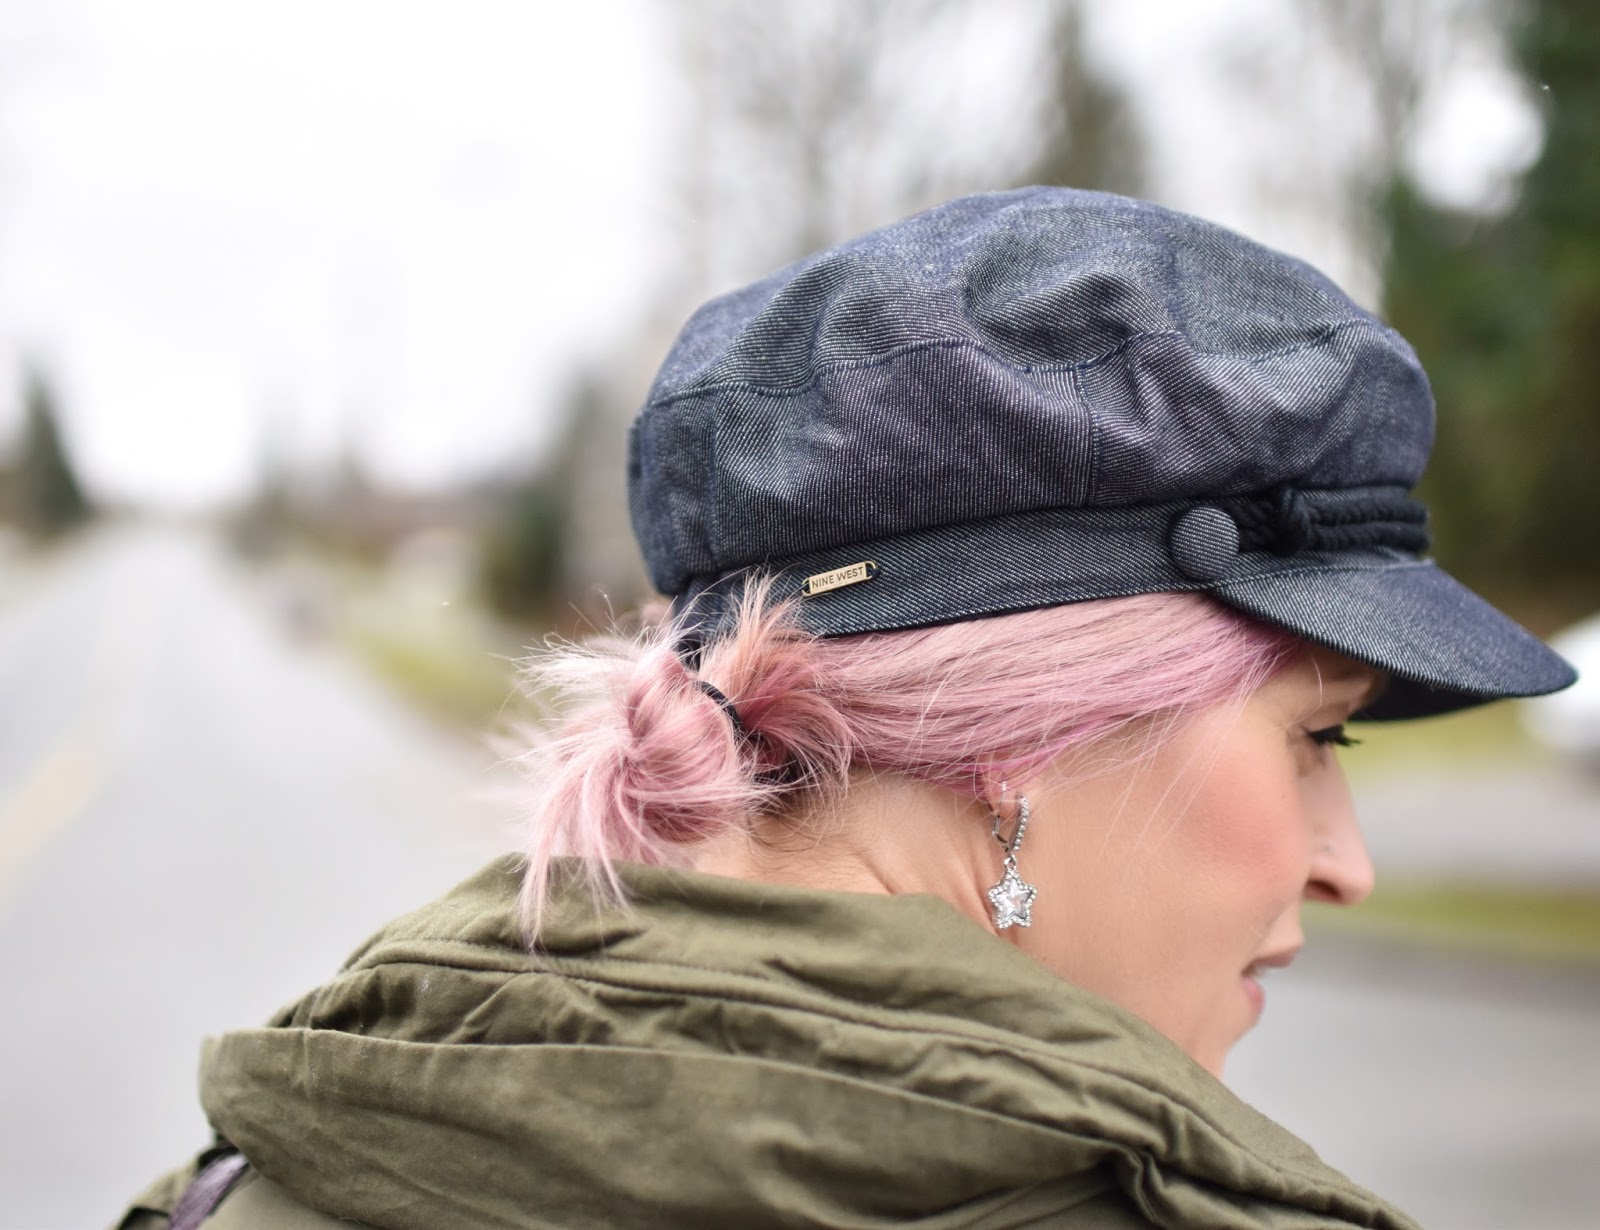 Monika Faulkner outfit inspiration - denim baker boy cap, pink hair